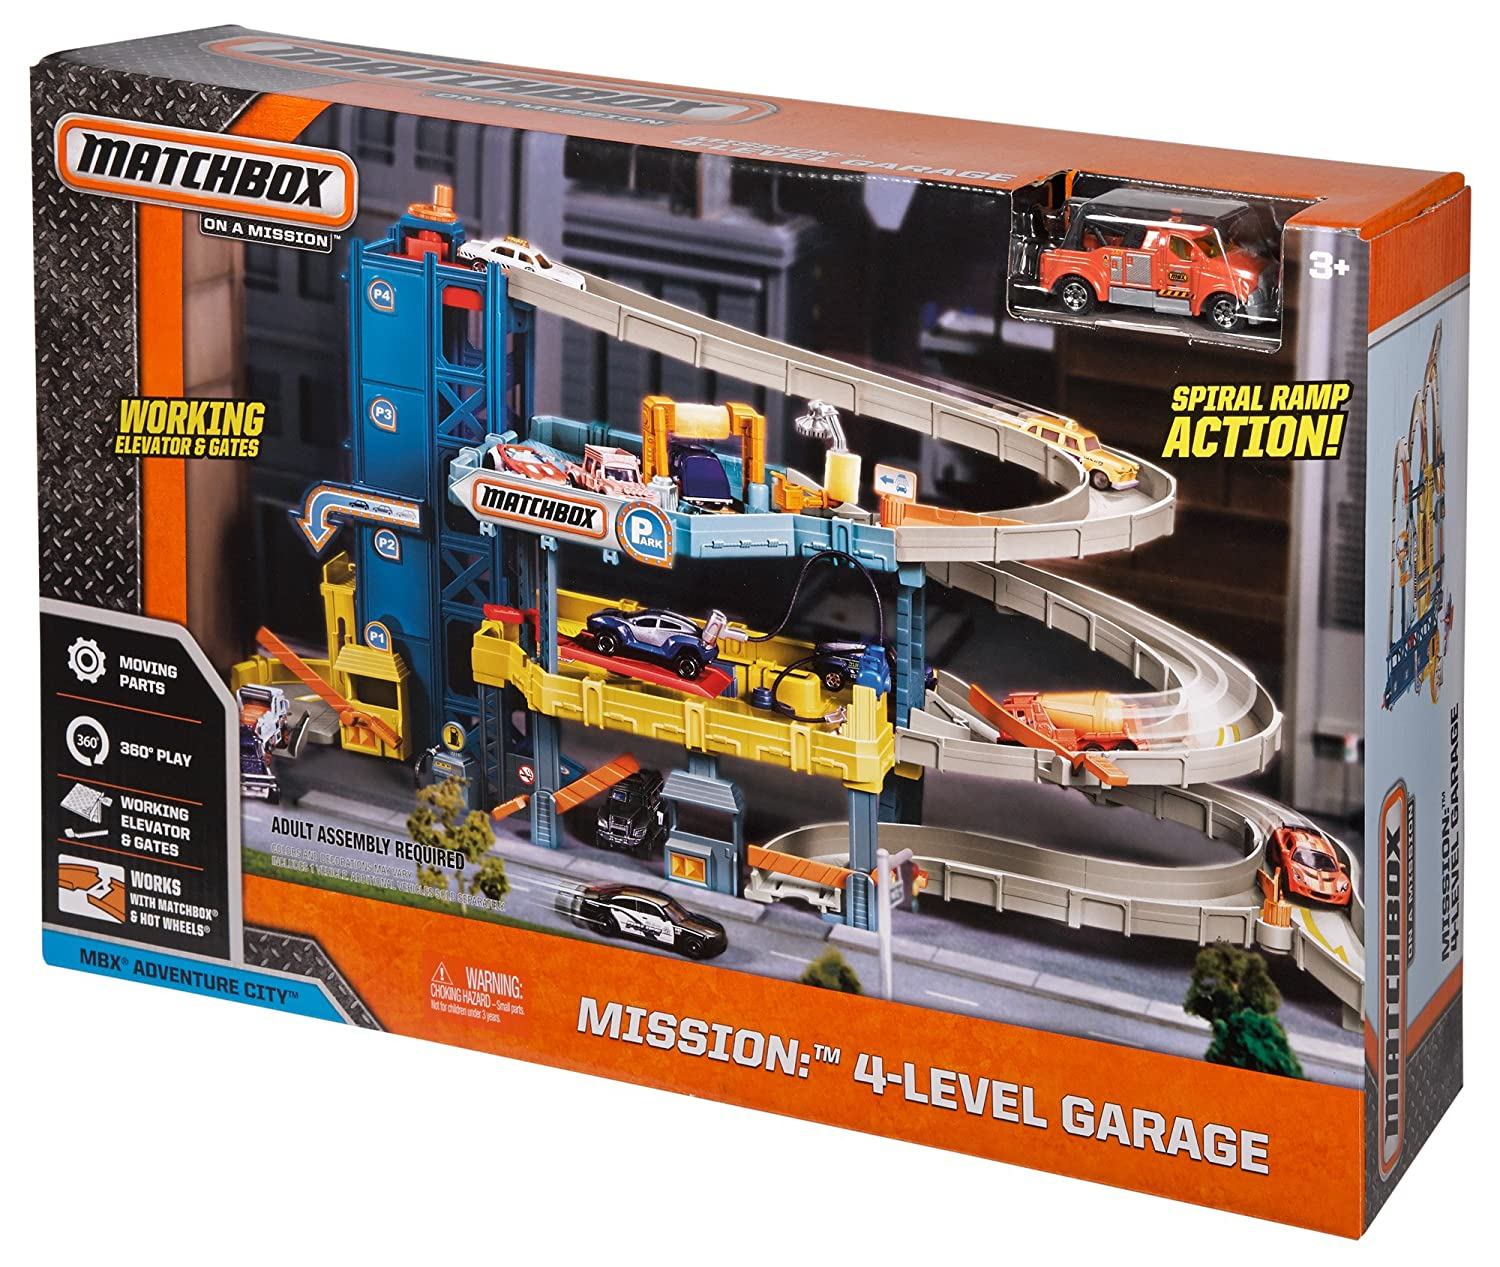 Best Matchbox Cars And Toys For Kids : Car garage play set level kids toy matchbox service